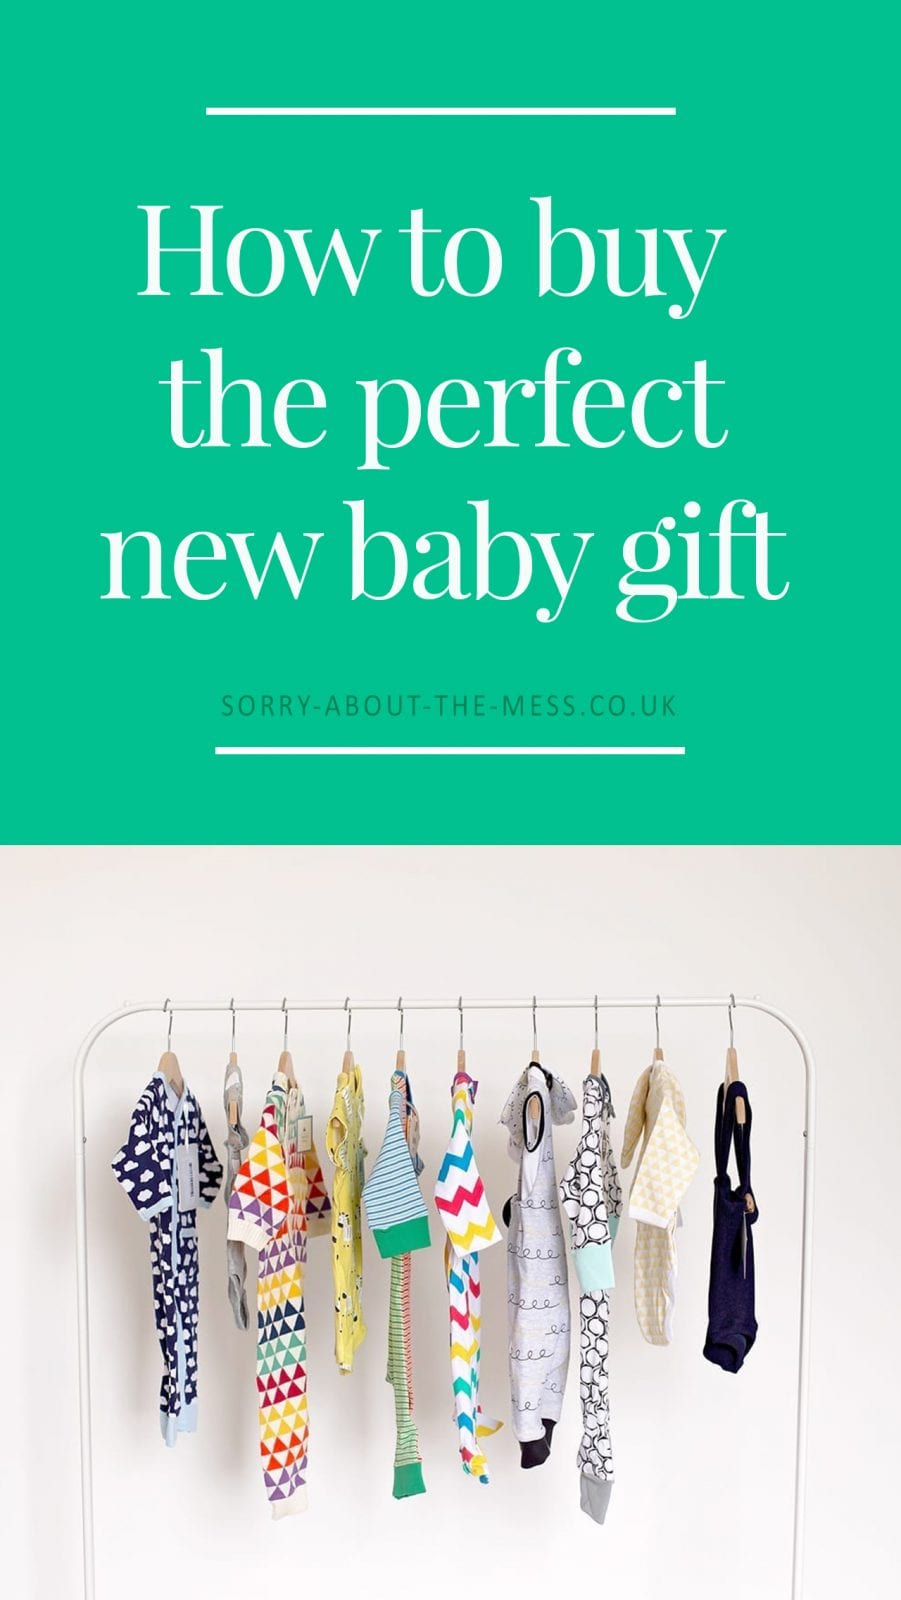 How to buy the perfect new baby gift. Friend having a baby? Read to discover meaningful and useful new baby present ideas